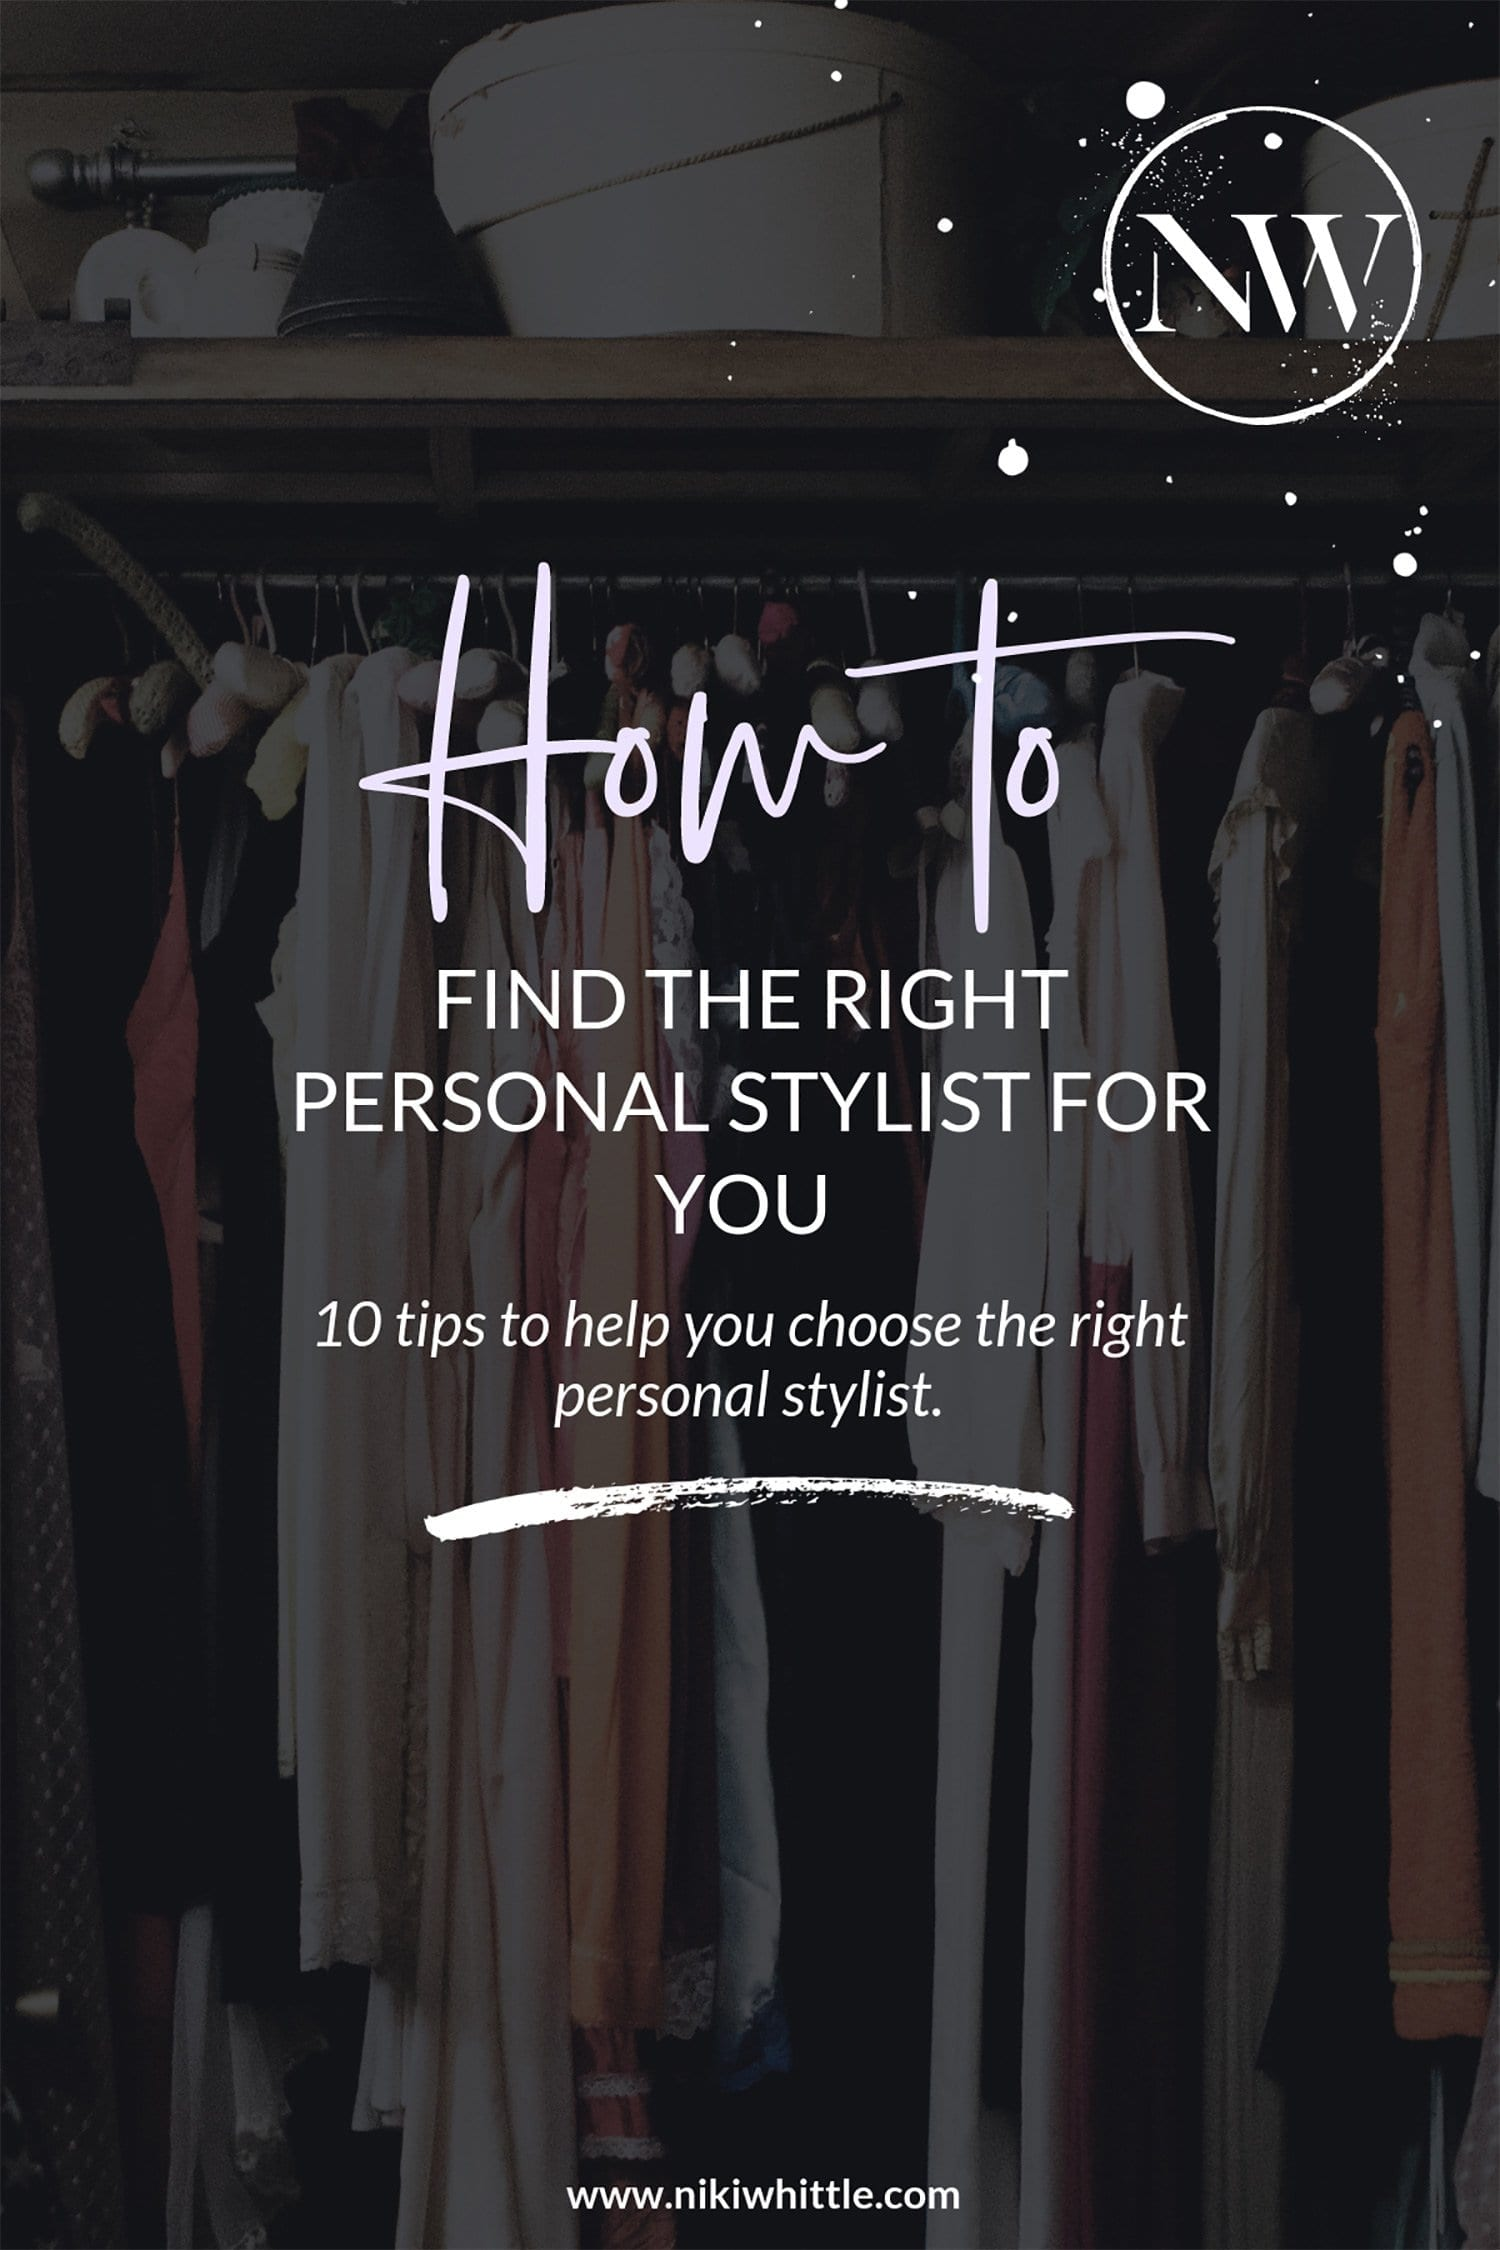 10 things to consider before you hire a personal stylist. Personal Stylist Niki whittle shares her answers to the most common questions and worries people have about hiring a personal stylist and shares 10 tips to help you overcome them and find the right stylist for you.